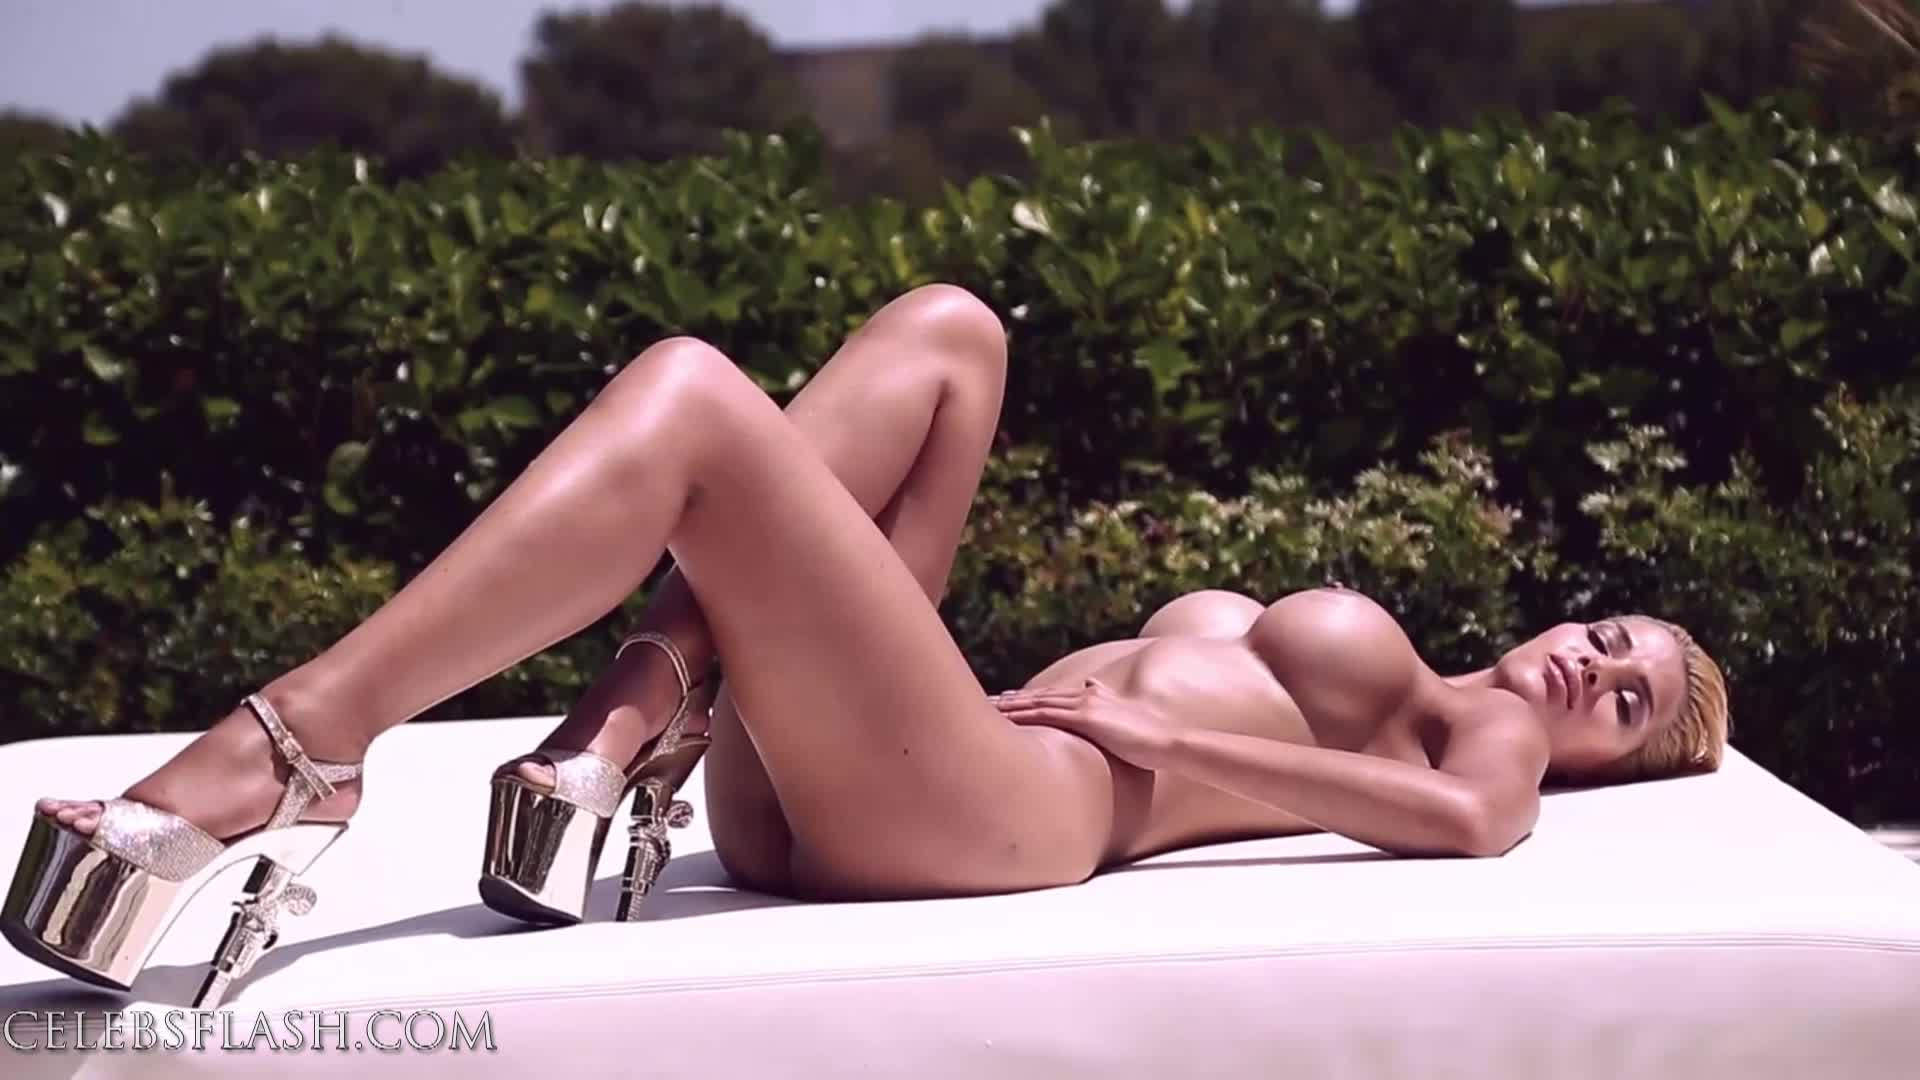 Micaela Schaefer nude photos (3)